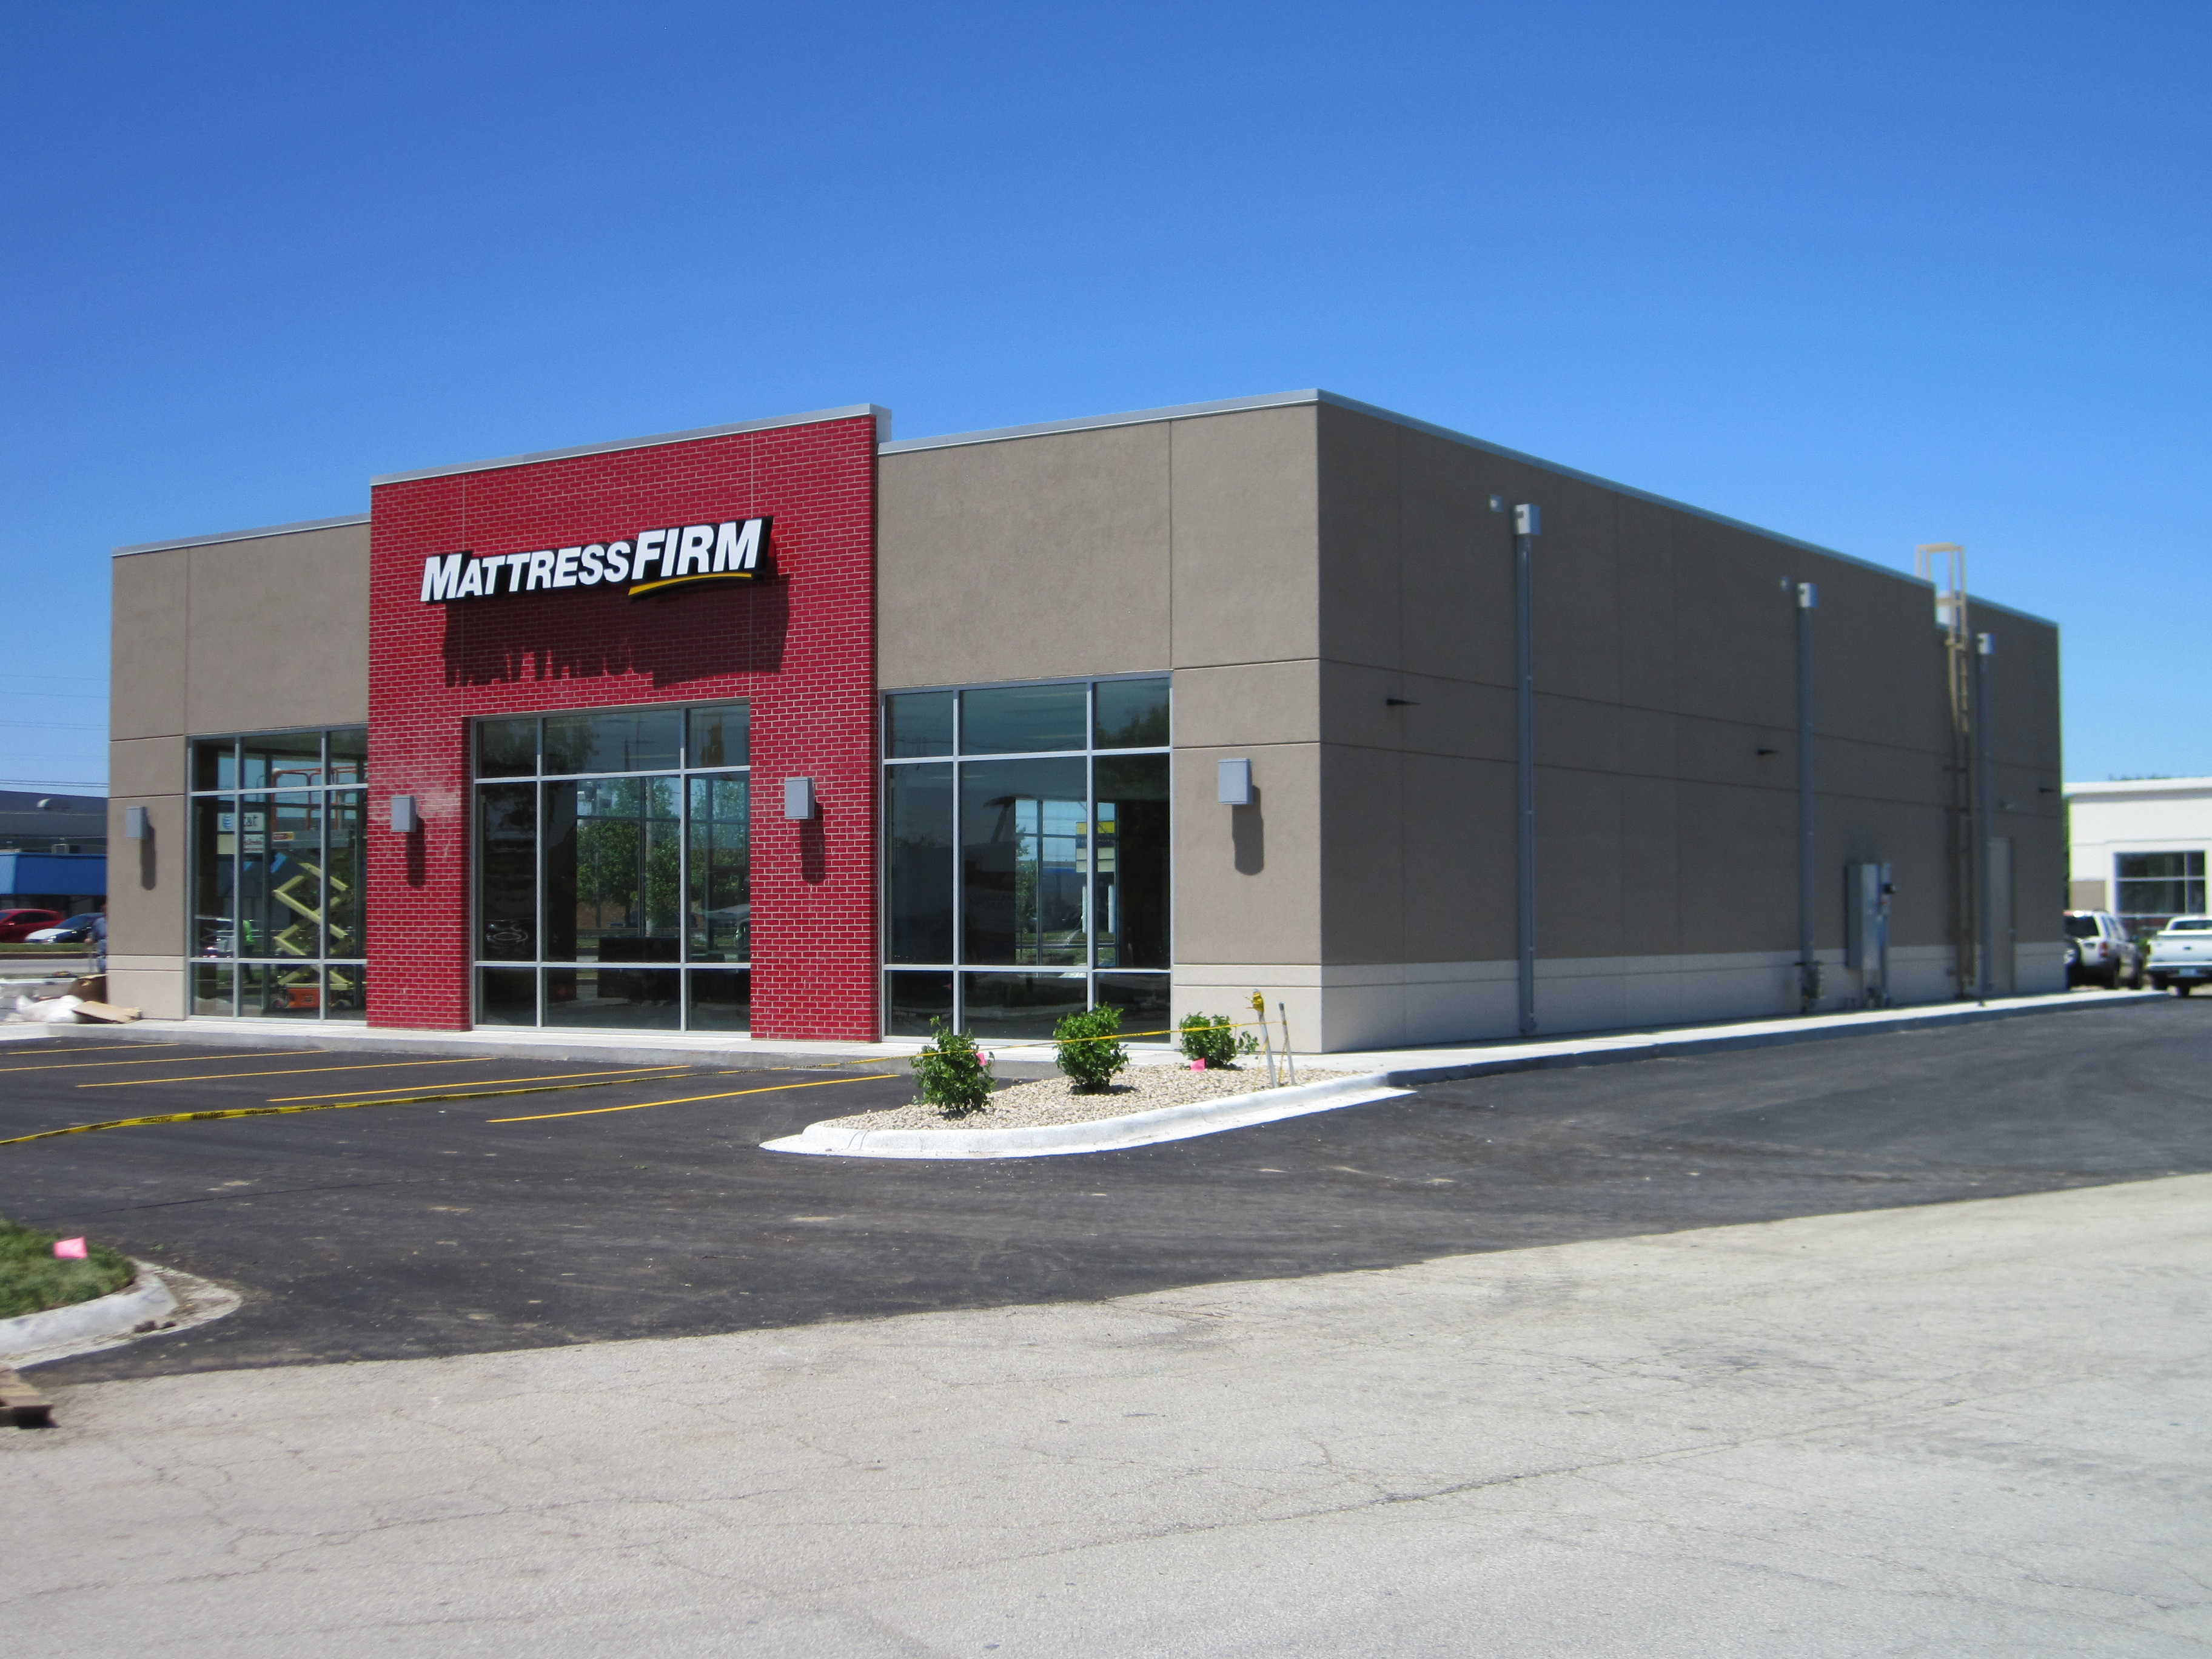 mattress firm building. New Retail Building 100% Leased To Mattress Firm . The Is 5,000 Square Feet And Sits On Approximately Half An Acre Of Land.